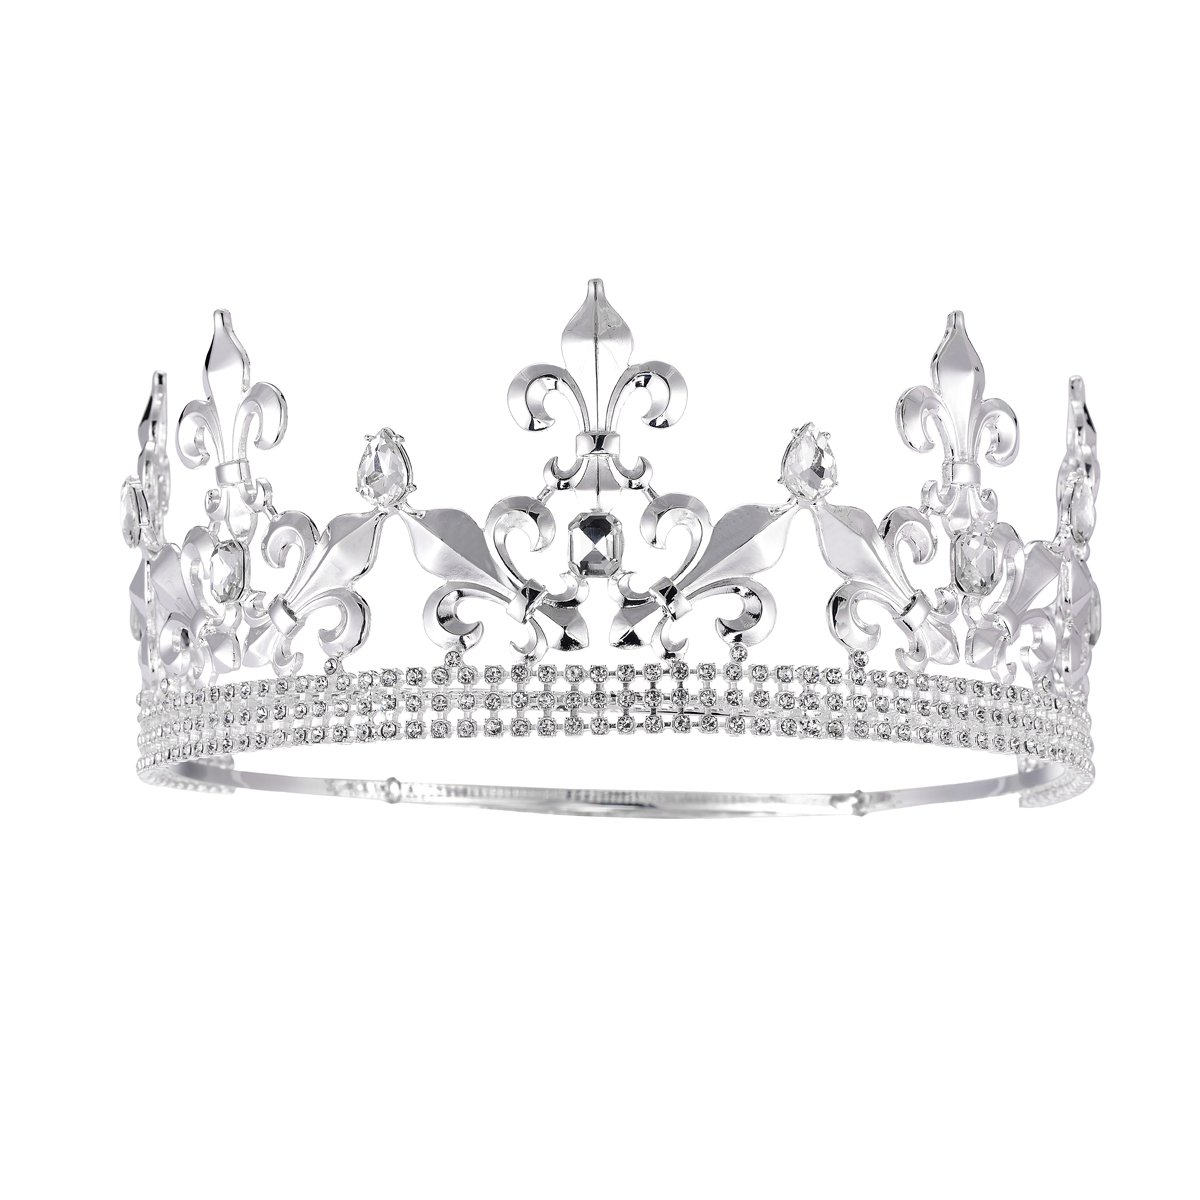 SSNUOY Adjustable Full Round Imperial Medieval Tiara Fleur De Lis King Crown Silver Finish by S SNUOY